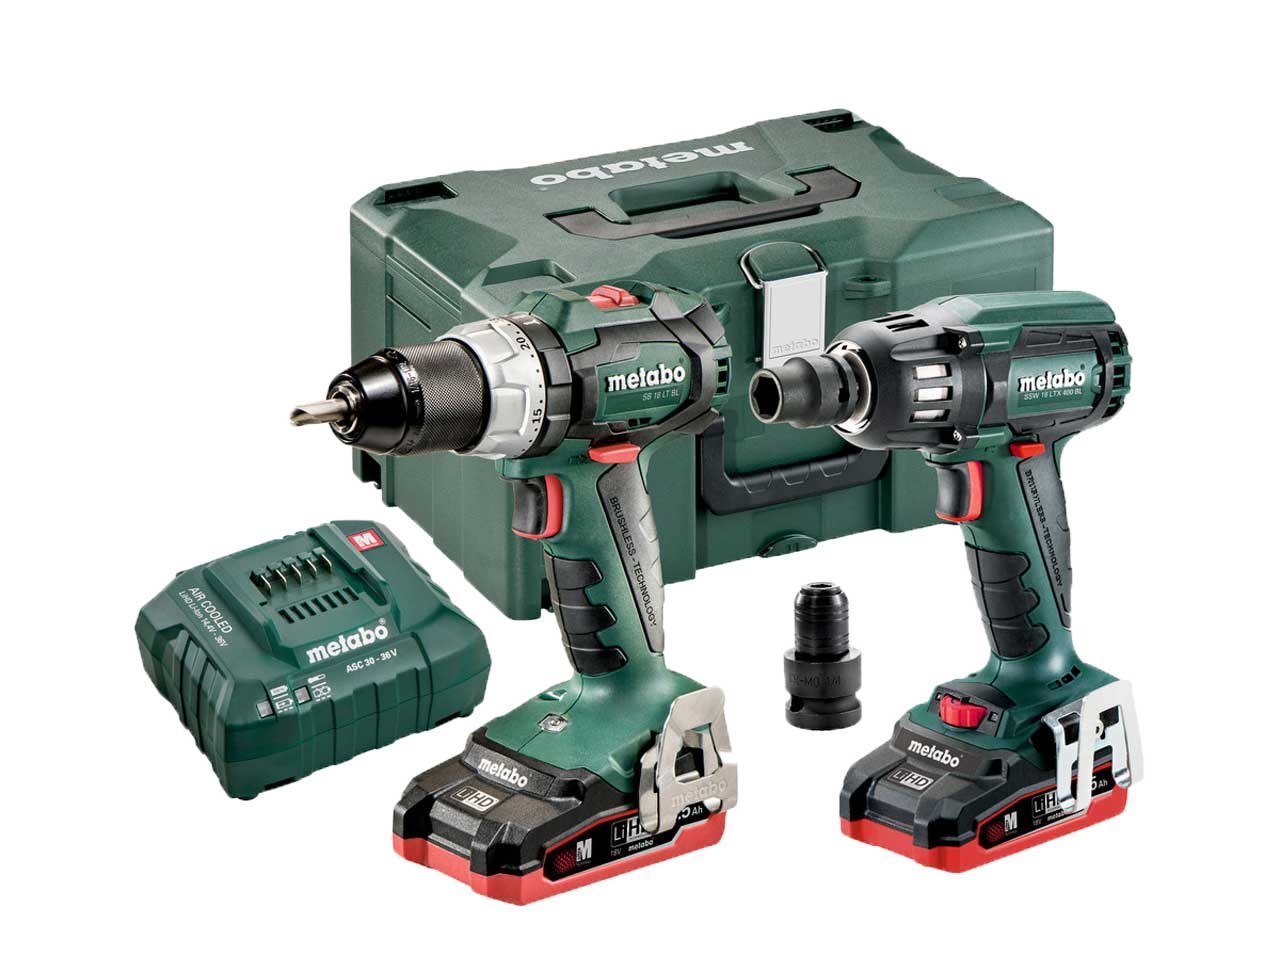 metabo combo set 2 18v bl lihd 18v lihd cordless drill and impact wrench combo. Black Bedroom Furniture Sets. Home Design Ideas